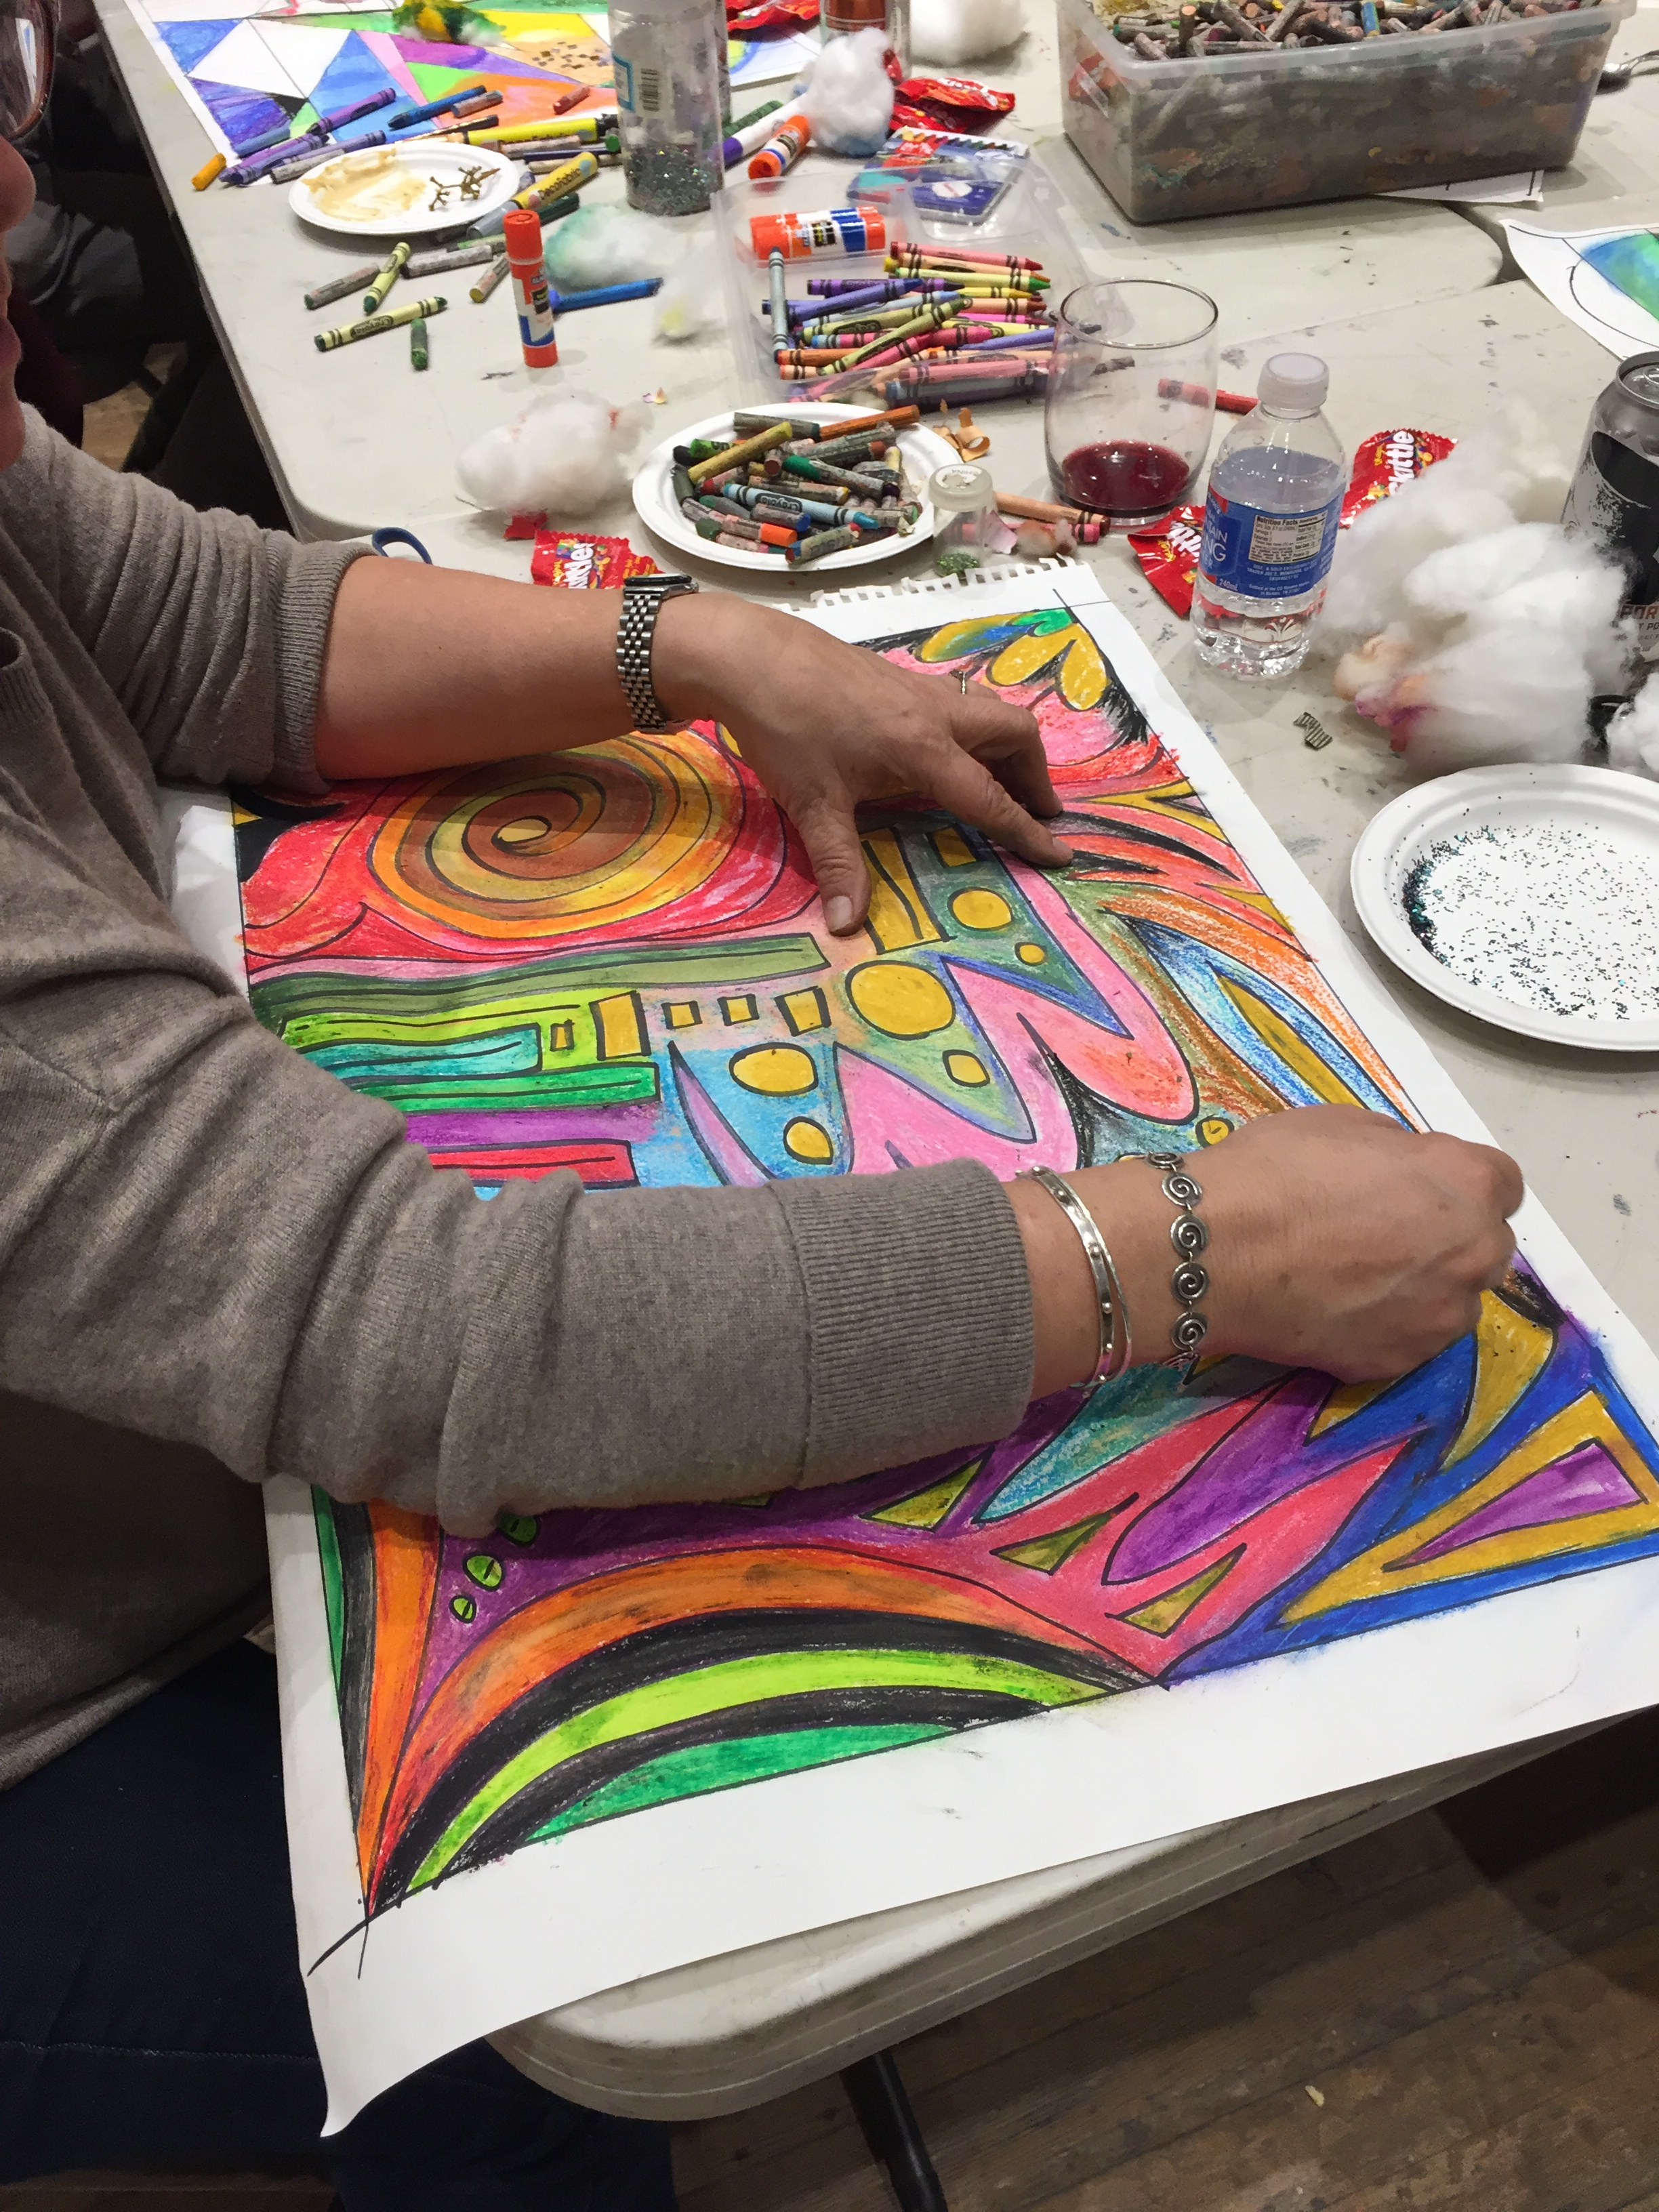 Super-Sized Adult Coloring & Craft Beer at CHAW 2016